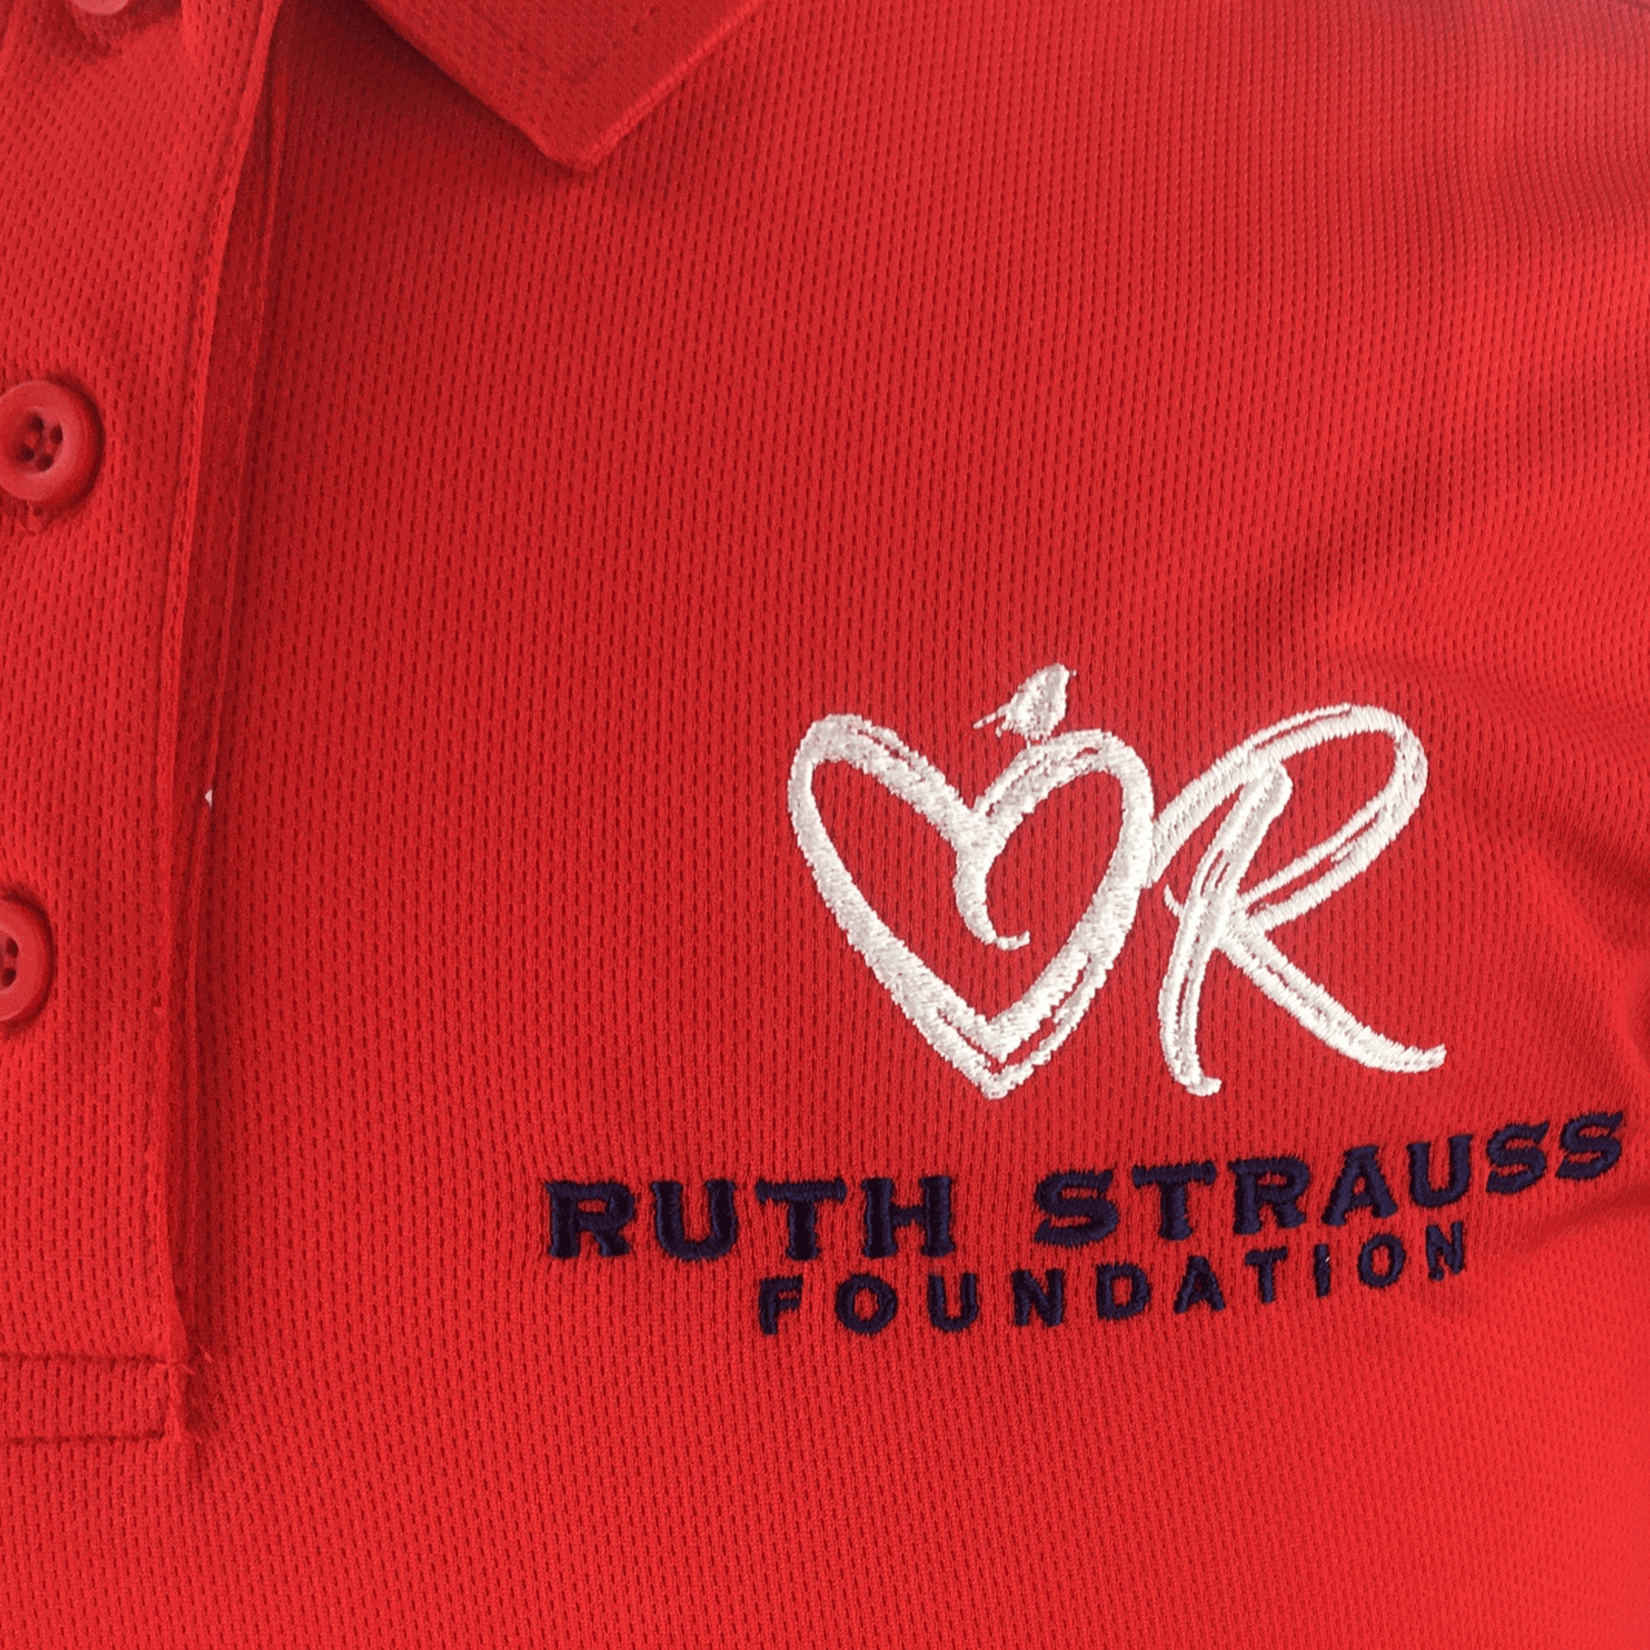 Ruth-Strauss-Foundation RSF Tech Polo